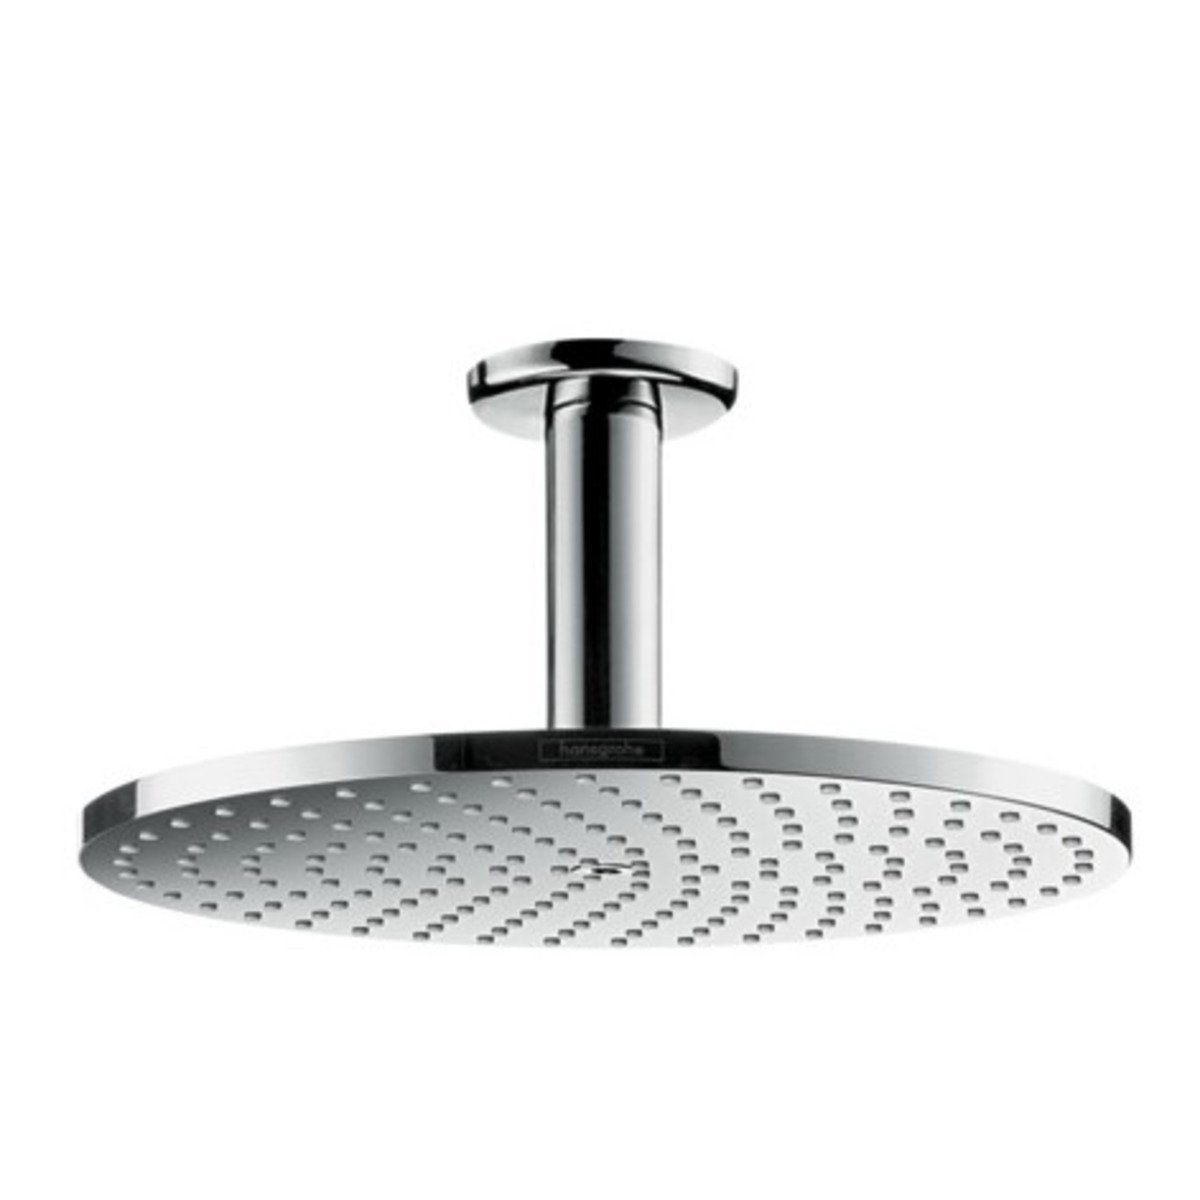 hansgrohe raindance s hoofddouche 240 1jet powderrain met plafondaansluiting 10cm 24cm chroom. Black Bedroom Furniture Sets. Home Design Ideas